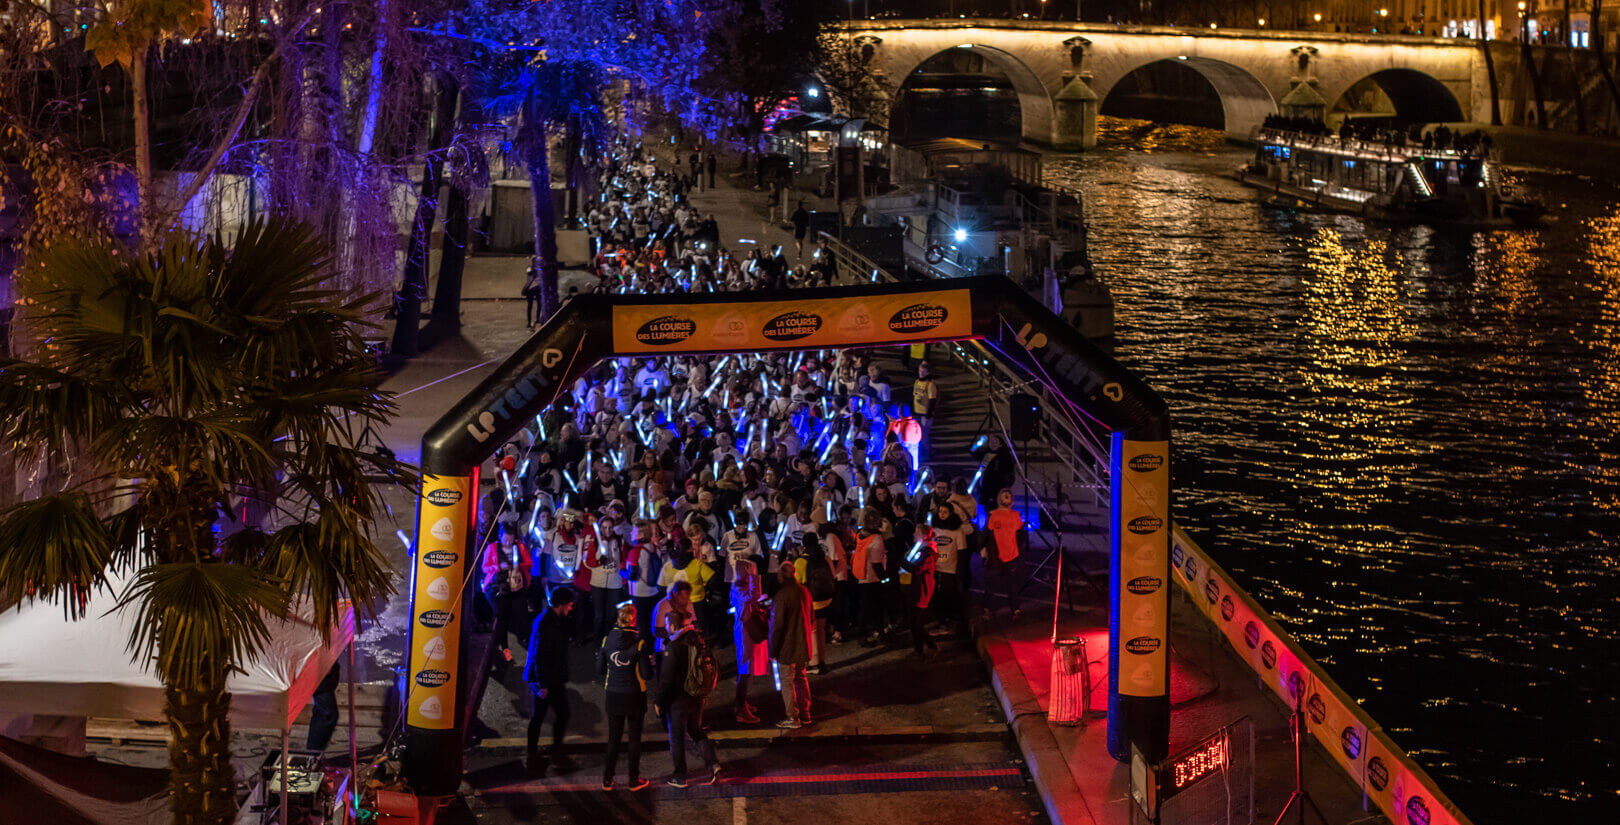 casiopeea course des lumieres